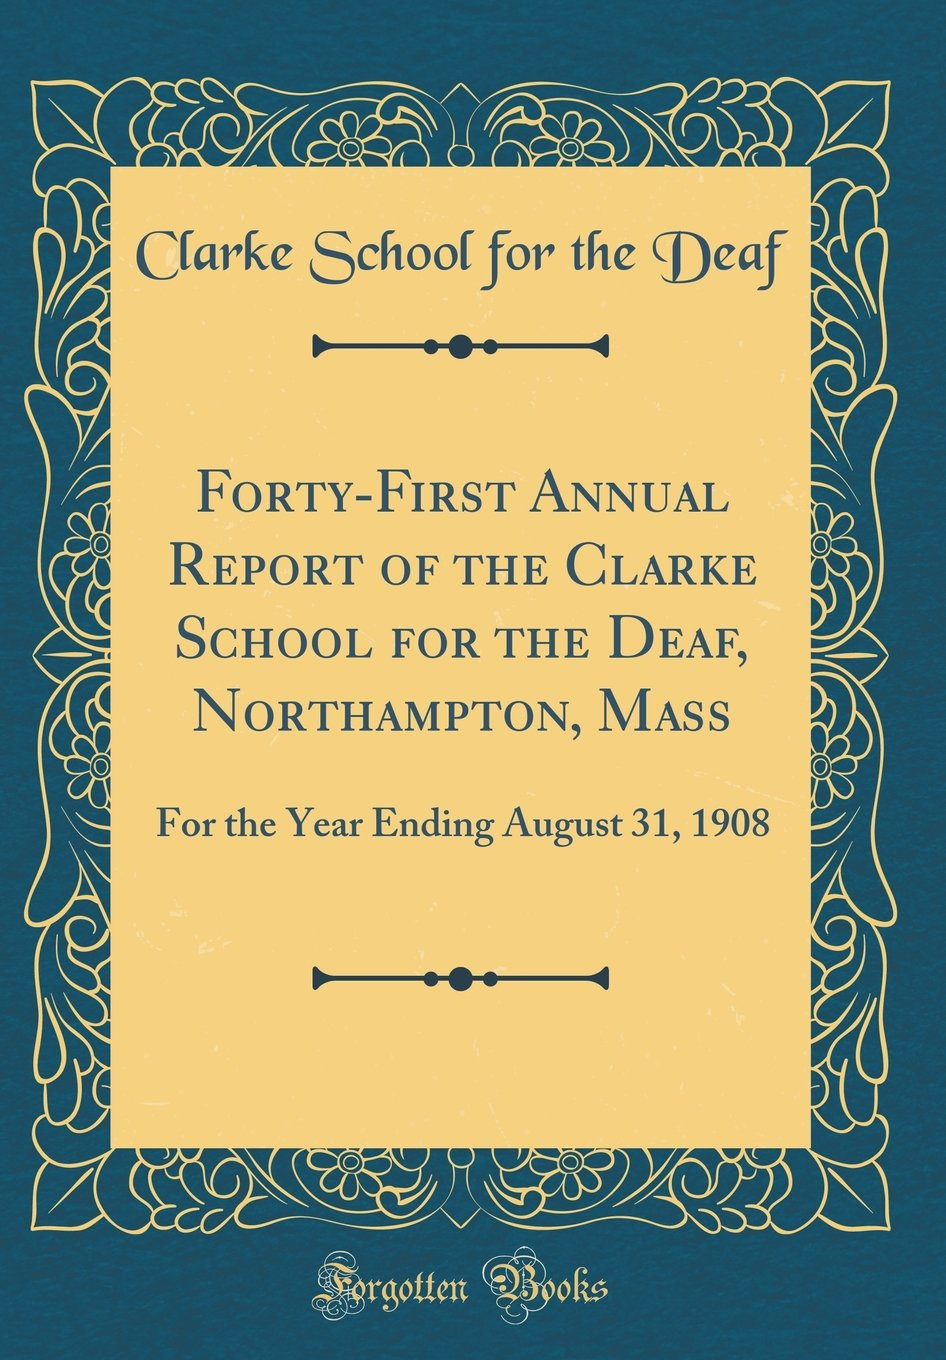 Download Forty-First Annual Report of the Clarke School for the Deaf, Northampton, Mass: For the Year Ending August 31, 1908 (Classic Reprint) ebook